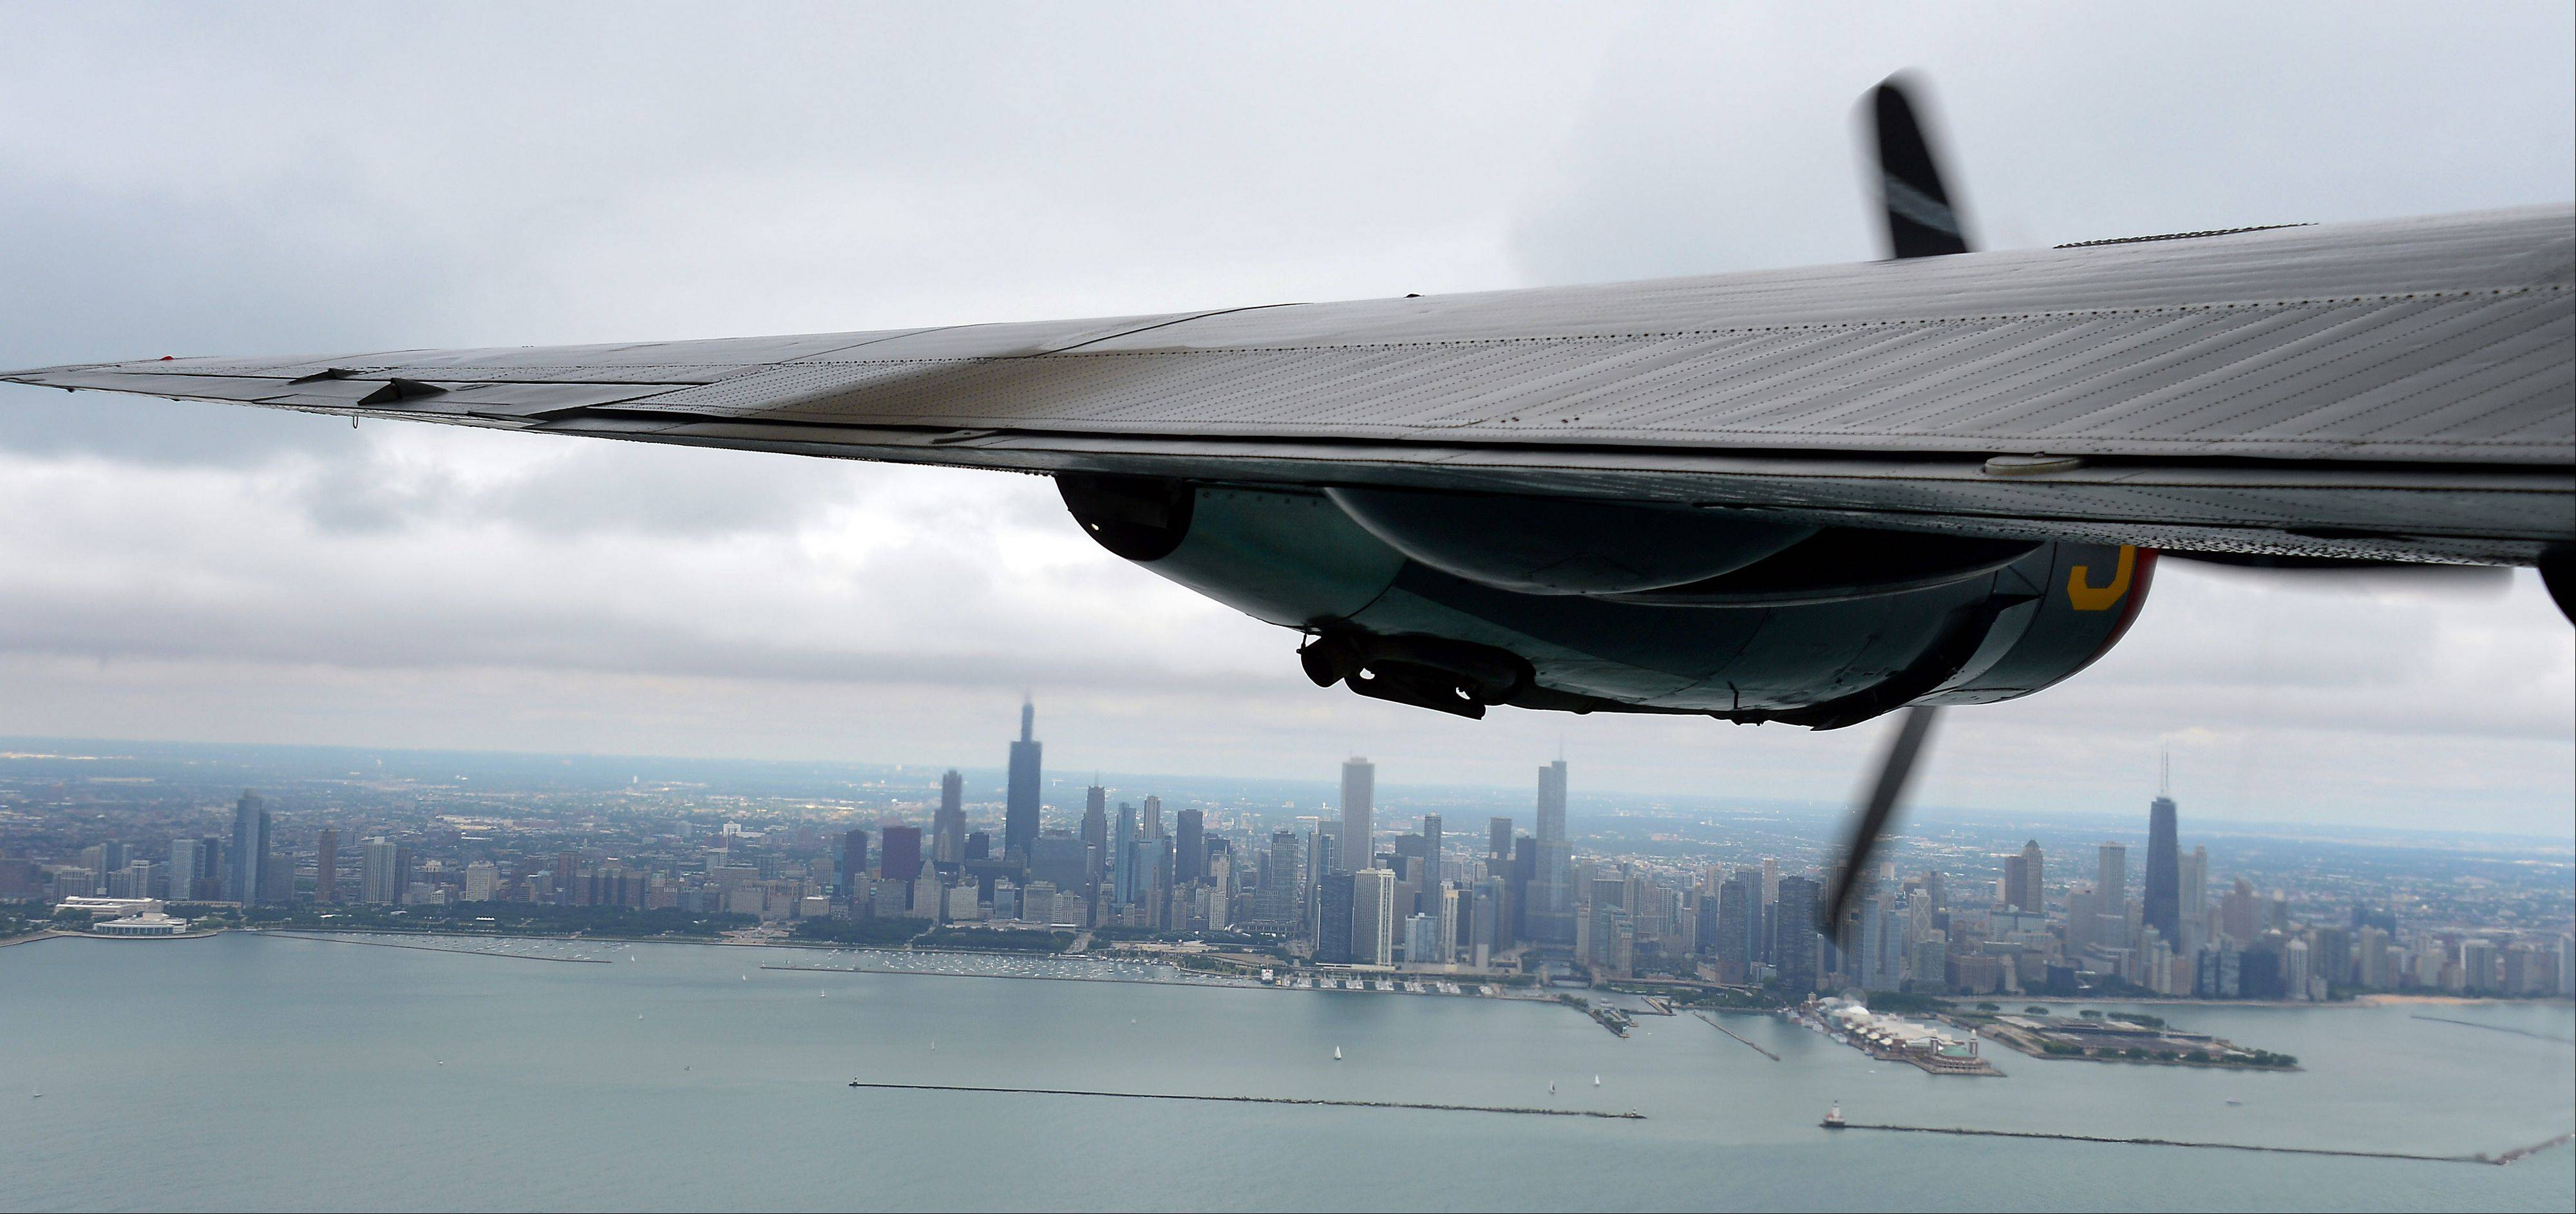 View of Chicago from the B-24 Liberator which landed at Chicago Executive Airport on Saturday as part of the 2013 Wings of Freedom Tour.